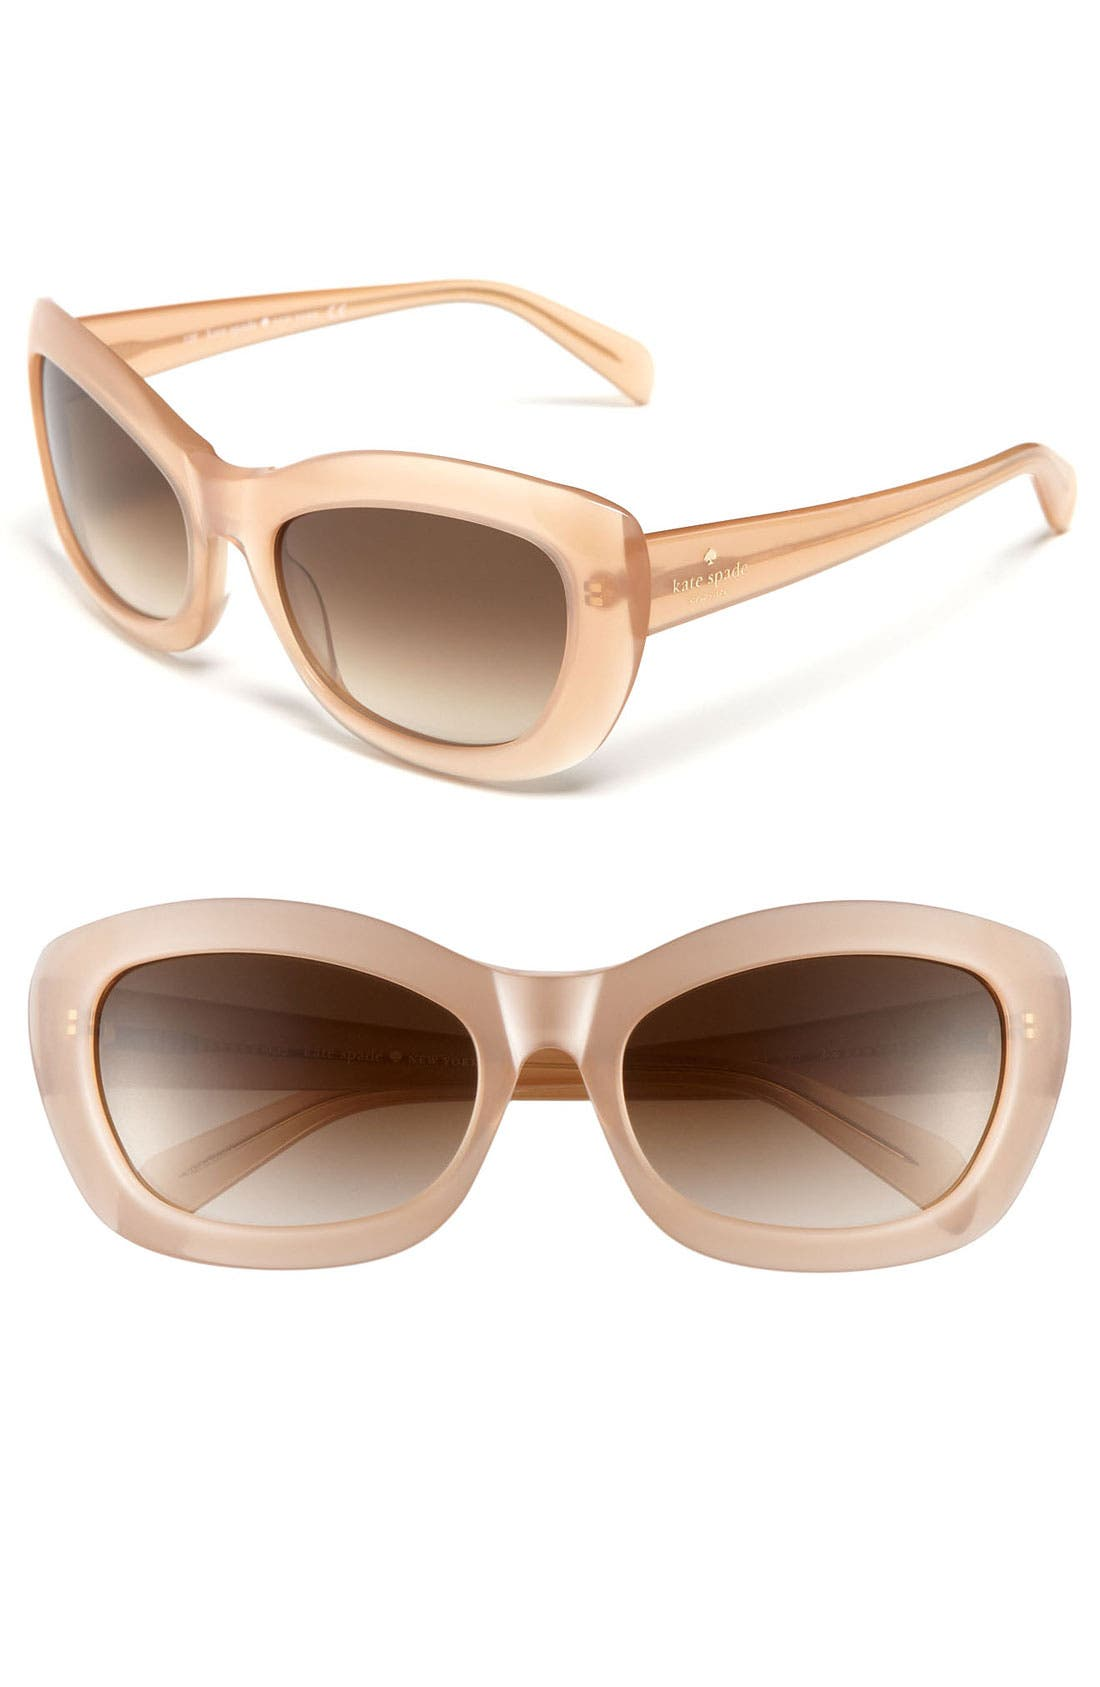 Main Image - kate spade new york retro cat's eye 56mm sunglasses